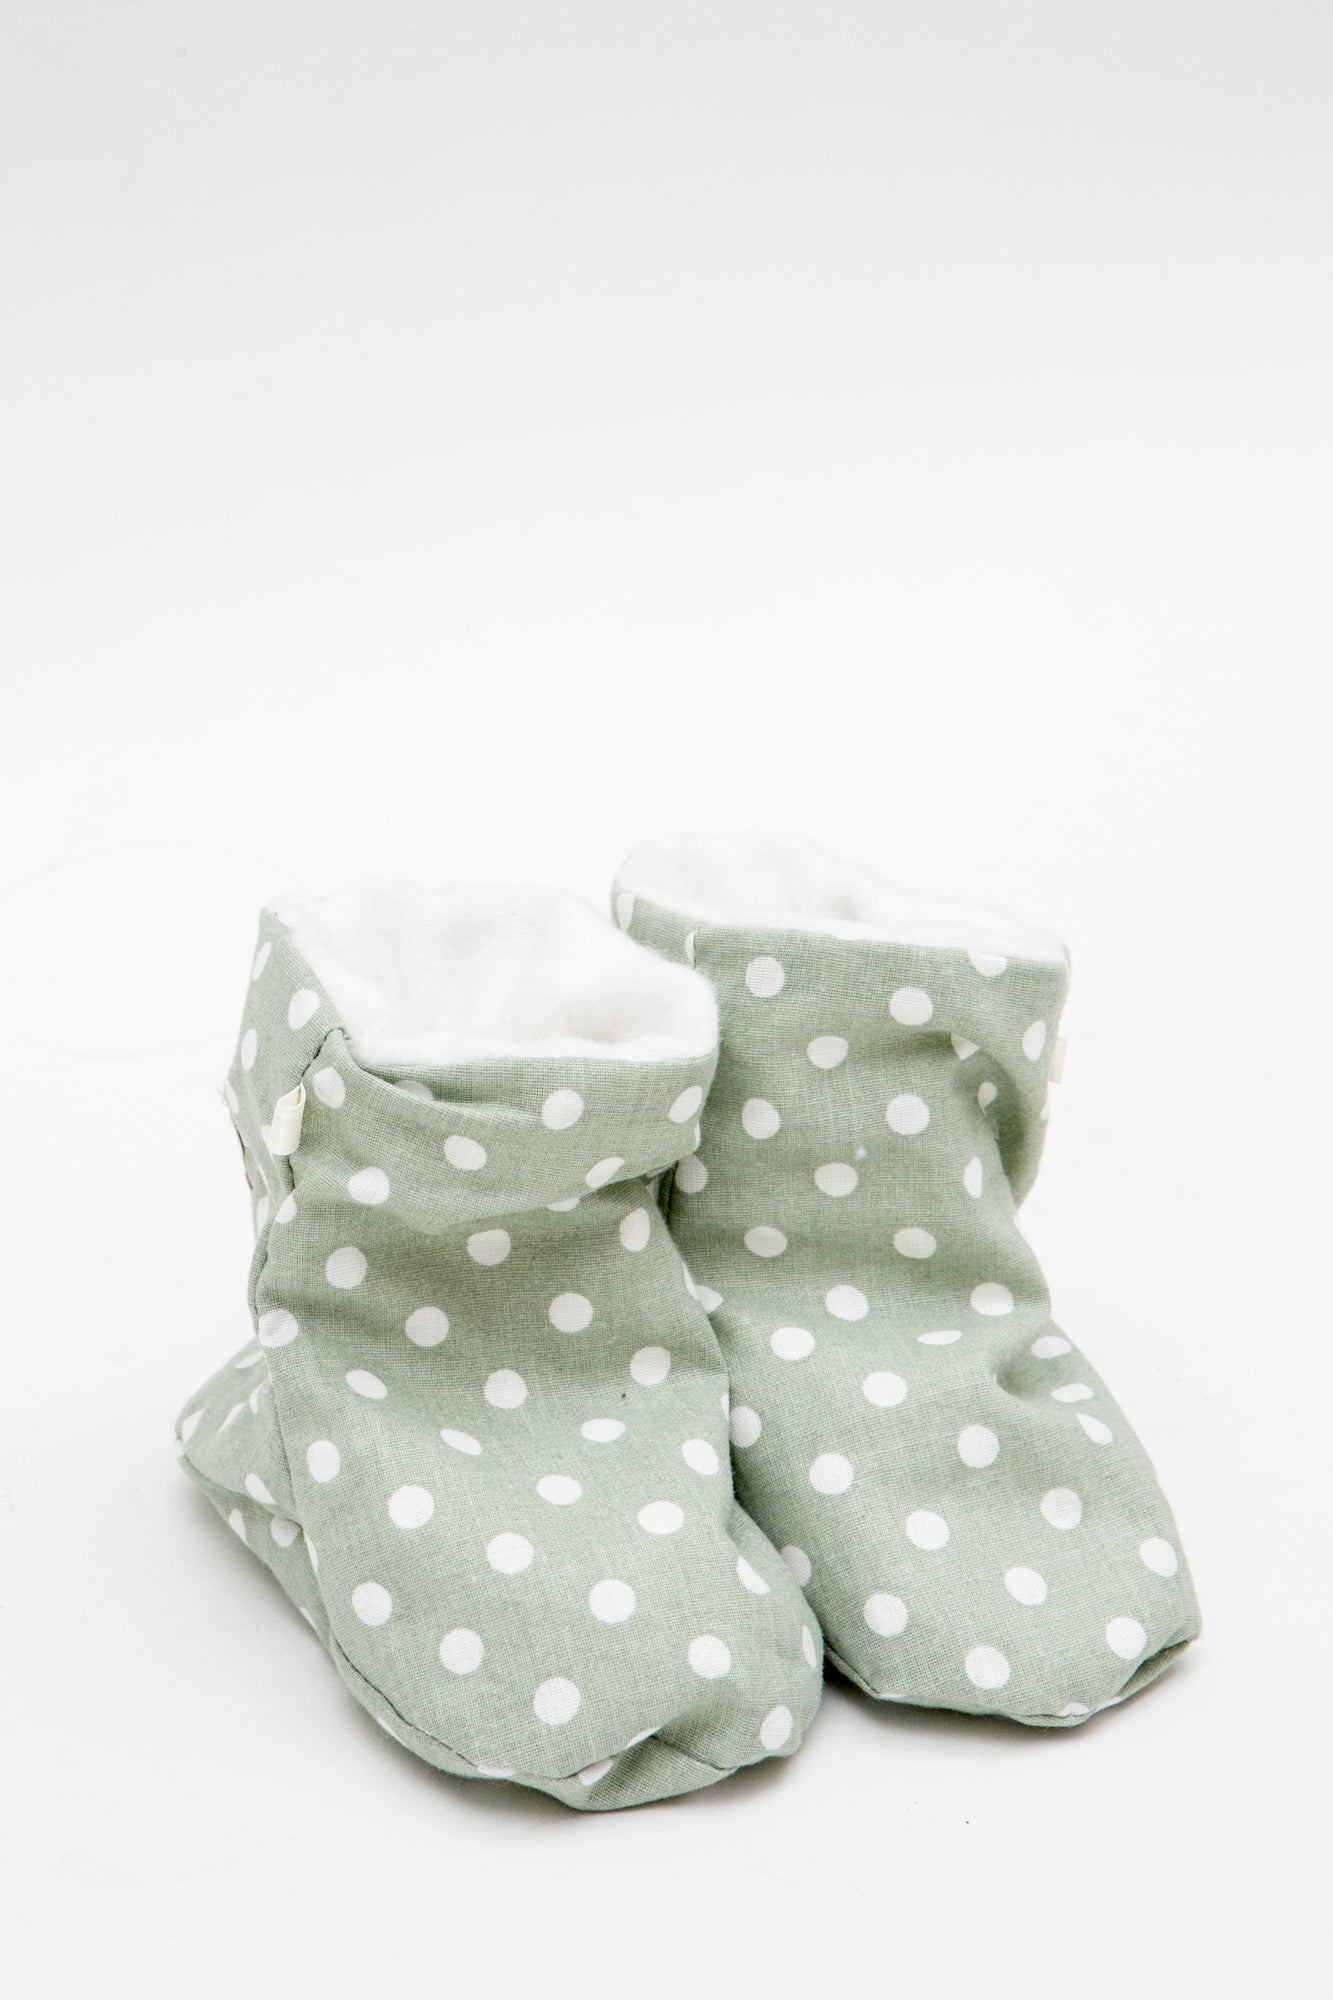 Baby Shoes in Mint Polka Dots